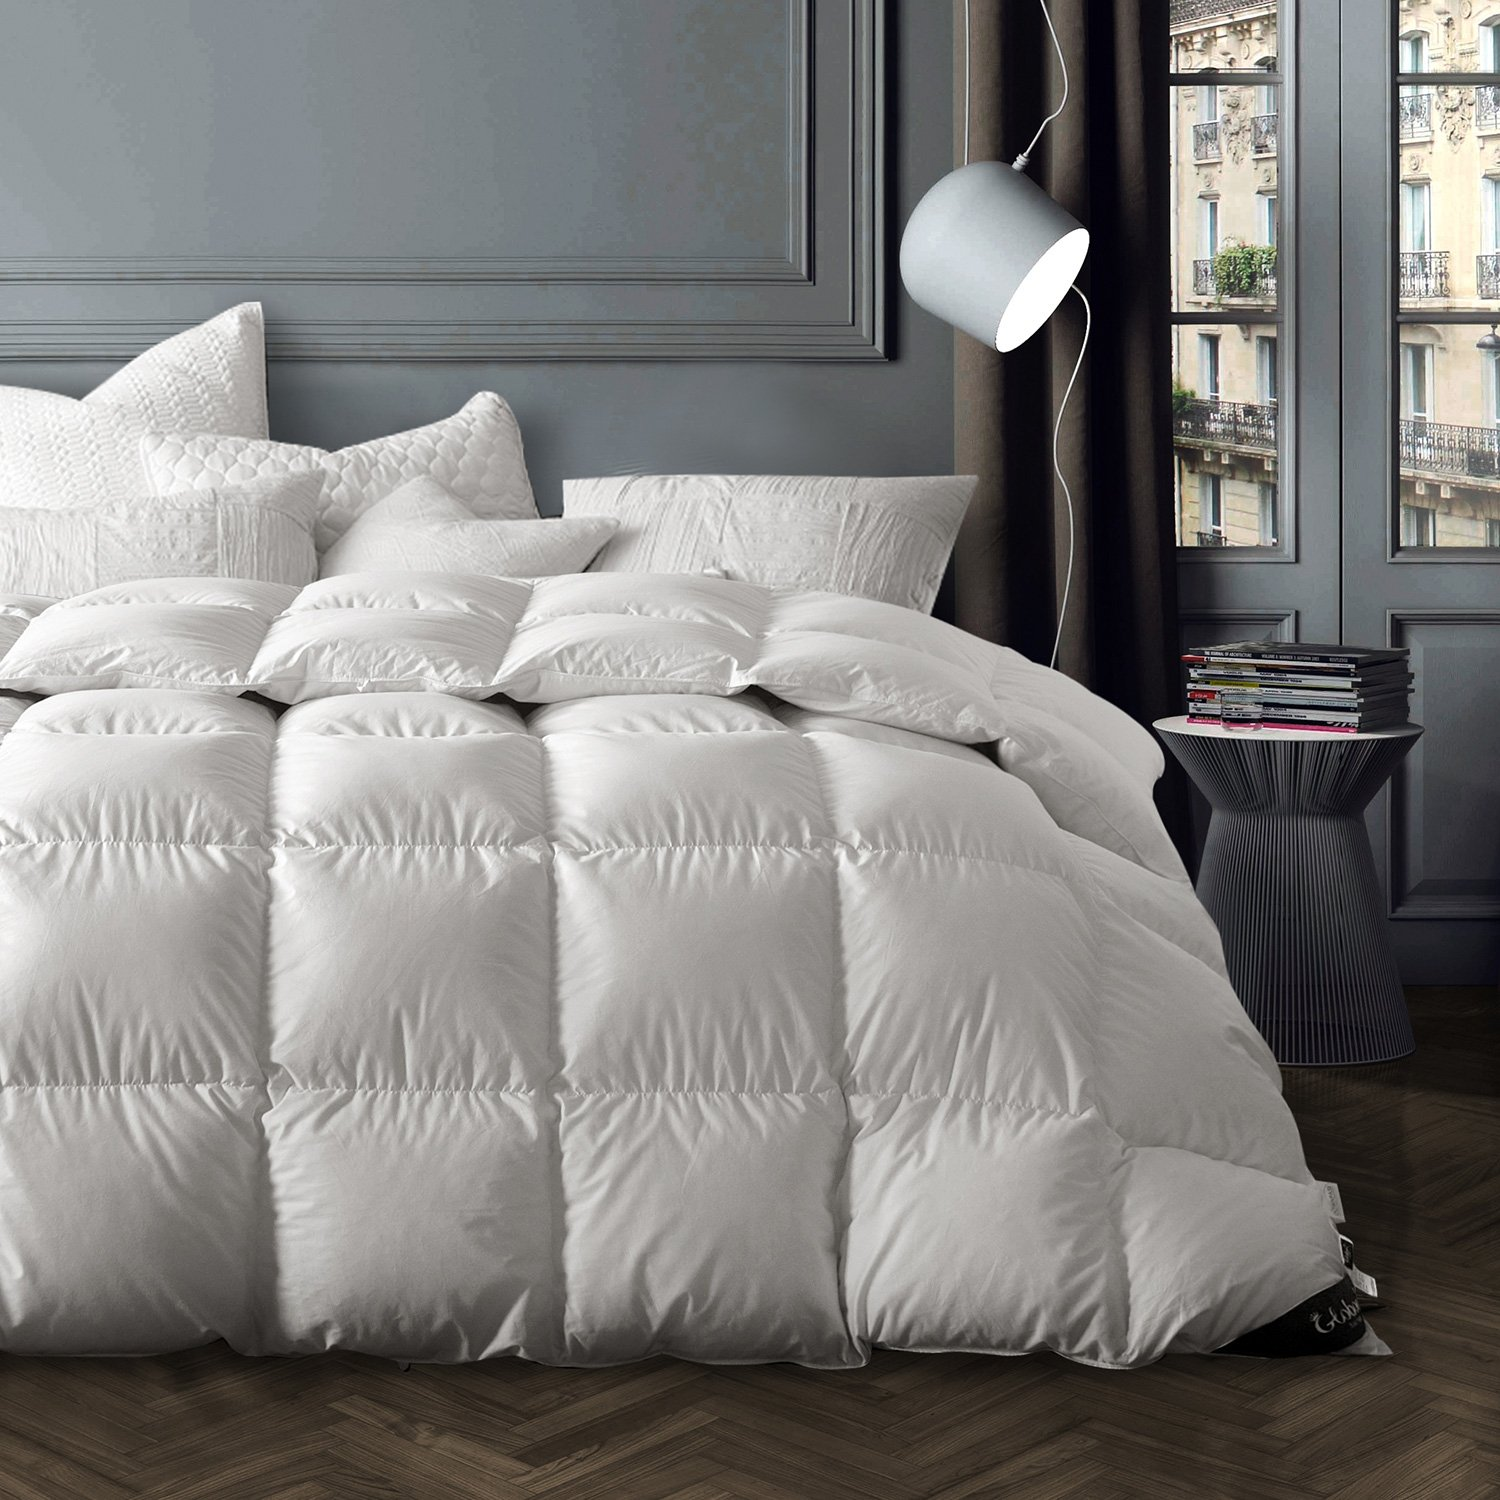 Globon Washable Texcote Nano-Treated White Goose Down Comforter Queen/Full Size, 50 OZ Fill Weight, 700 Fill Power, 400 Thread Count 100% Cotton Shell, White